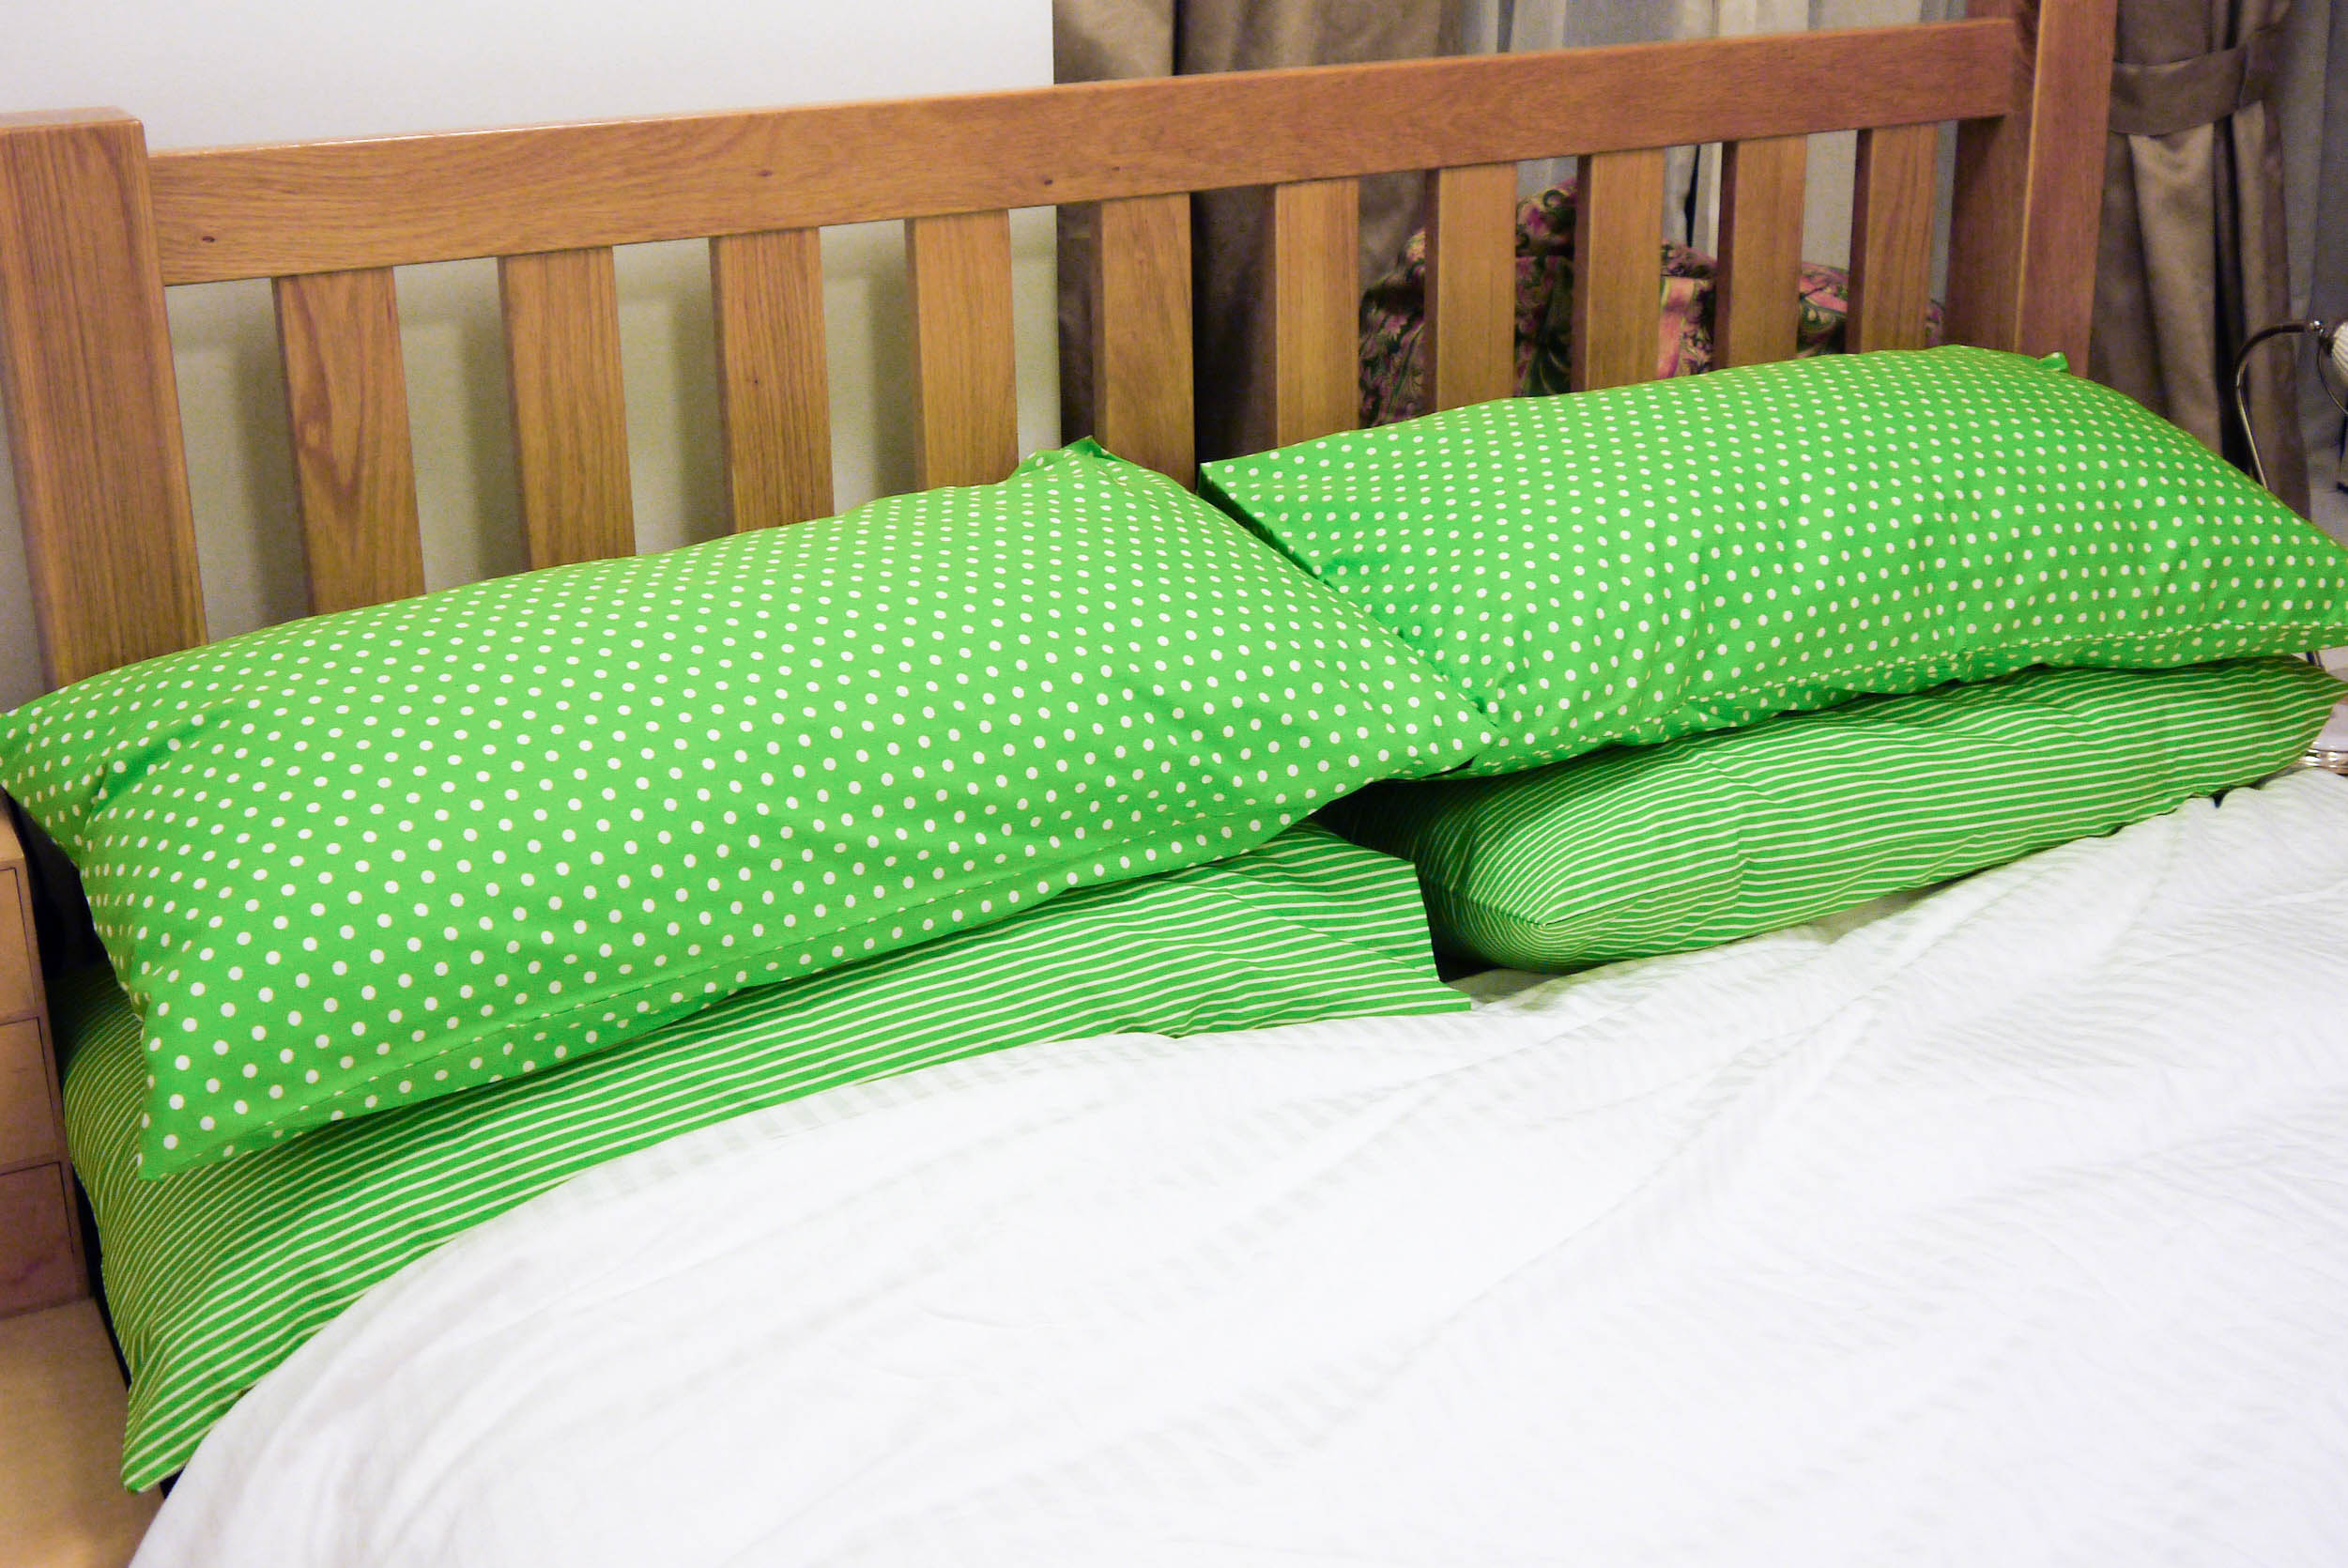 green-pillowcases.jpg